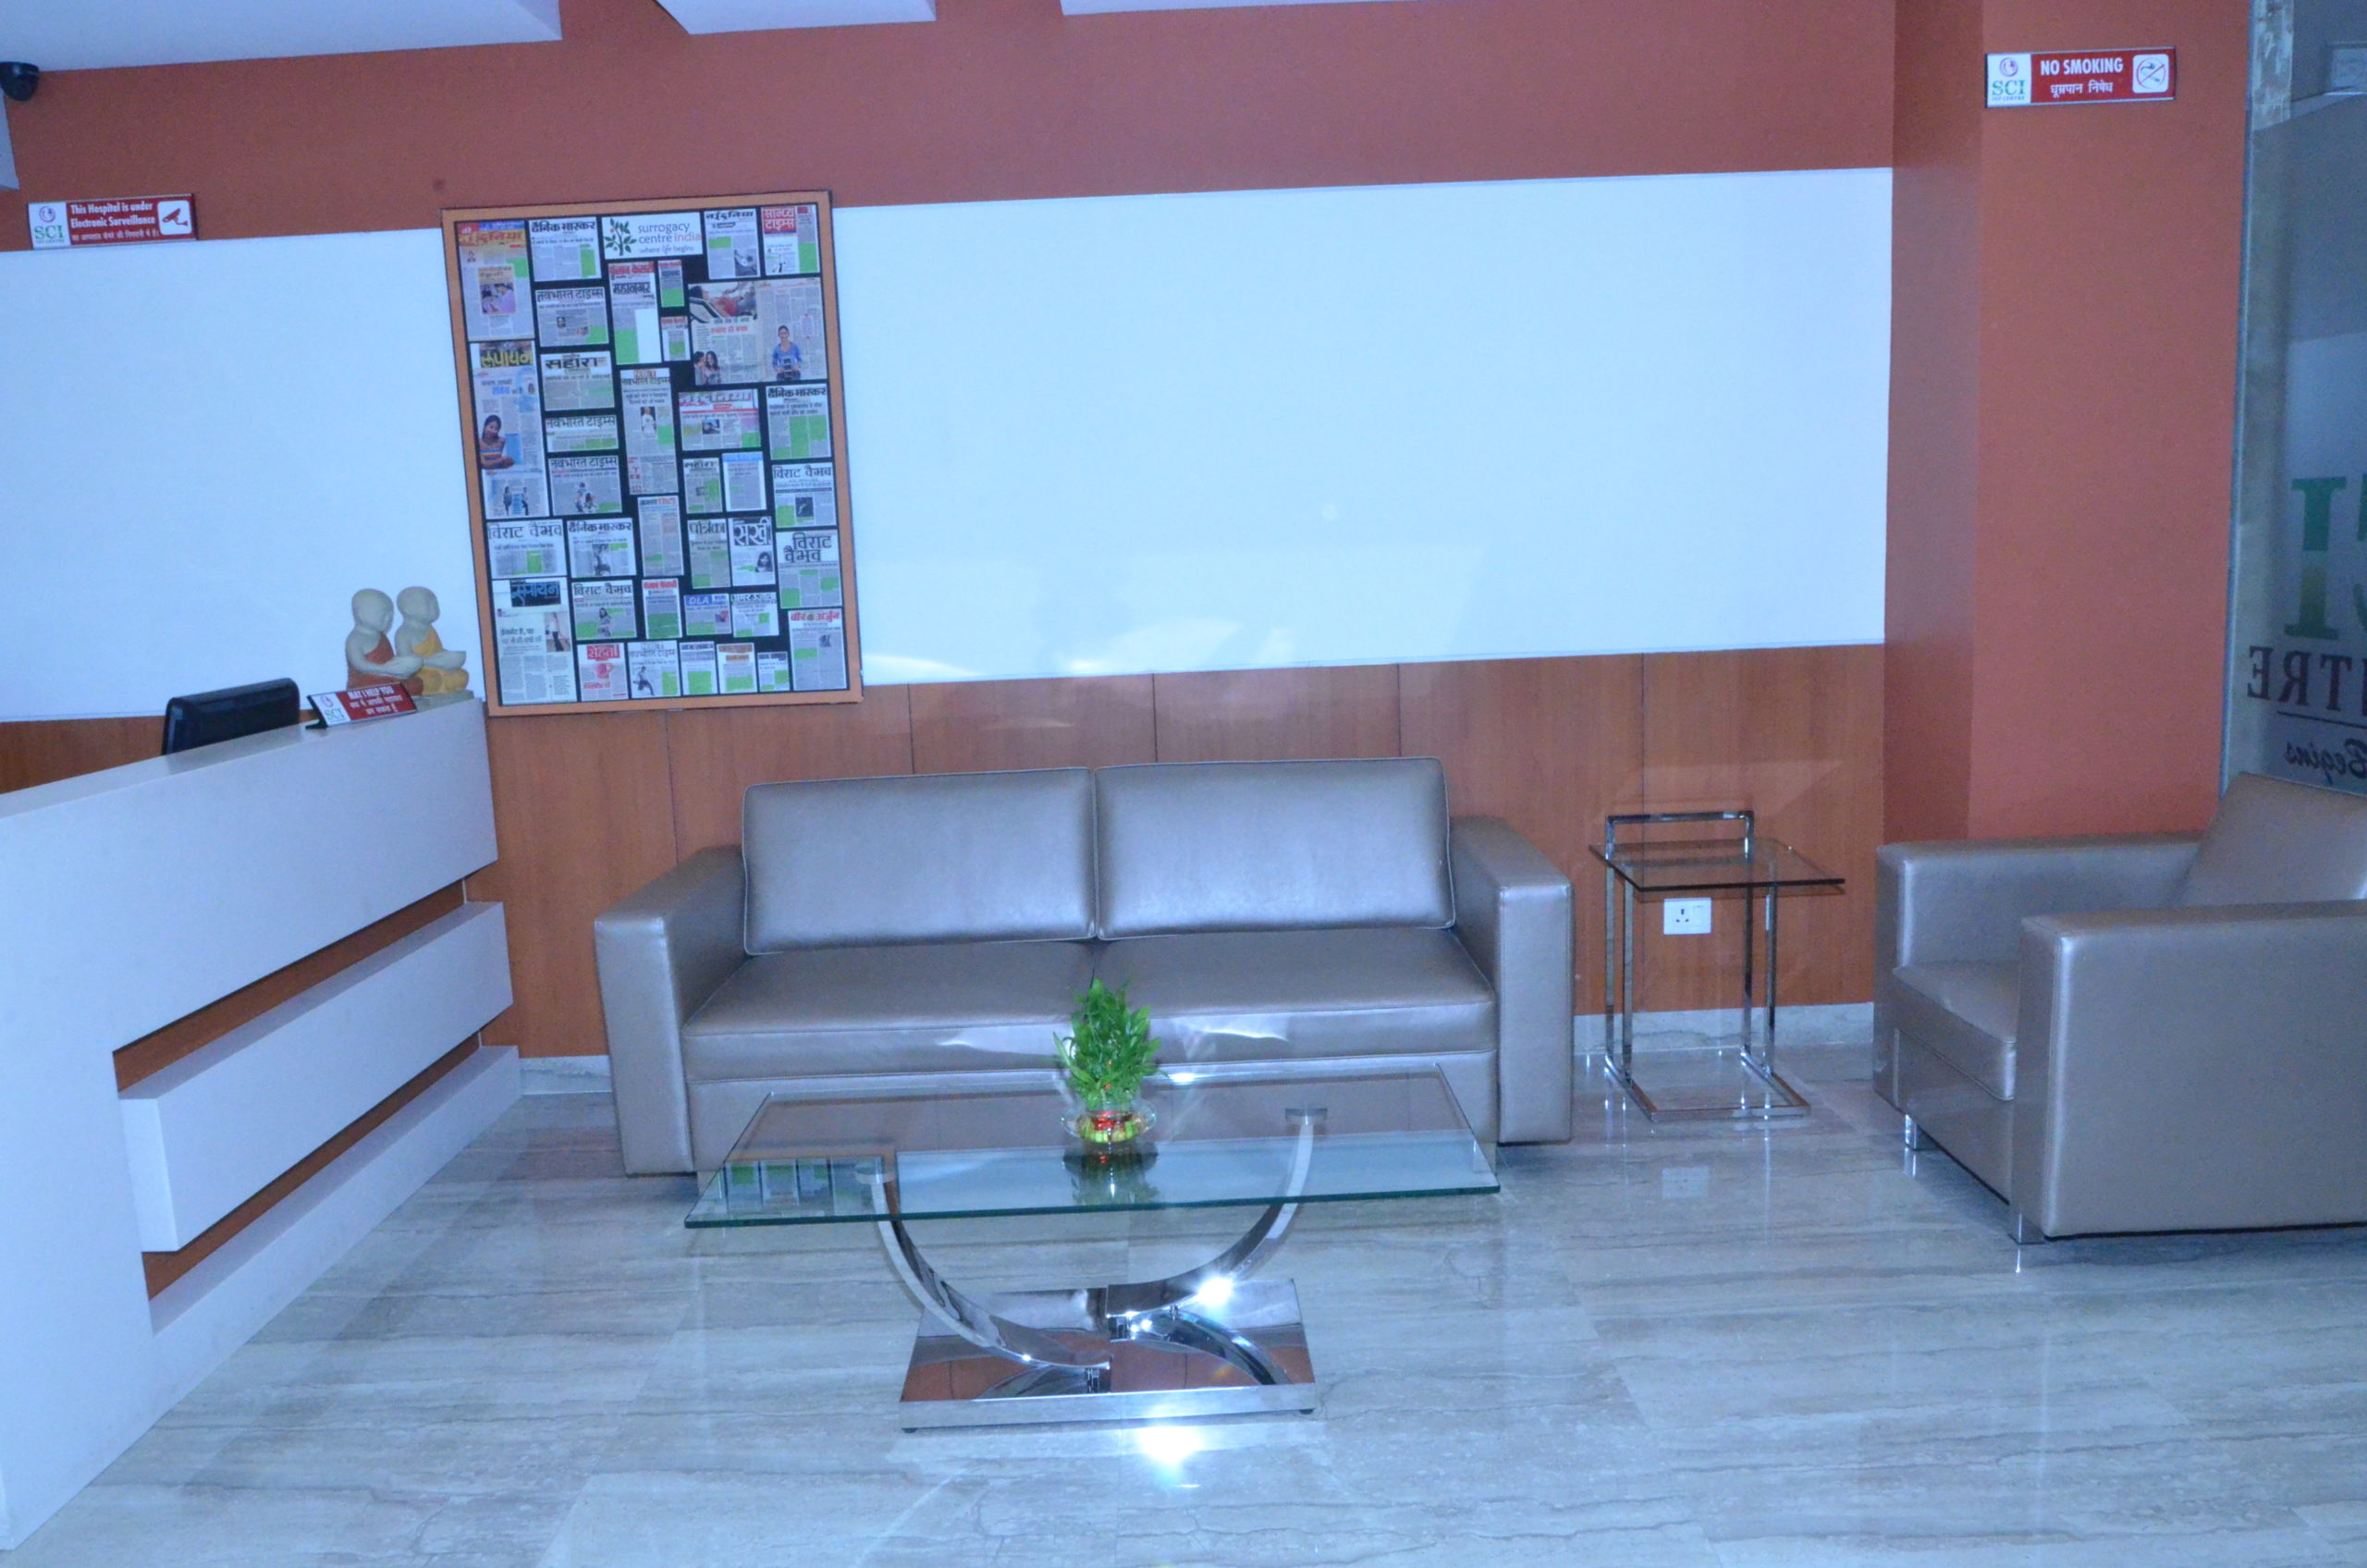 sci ivf centre waiting room3